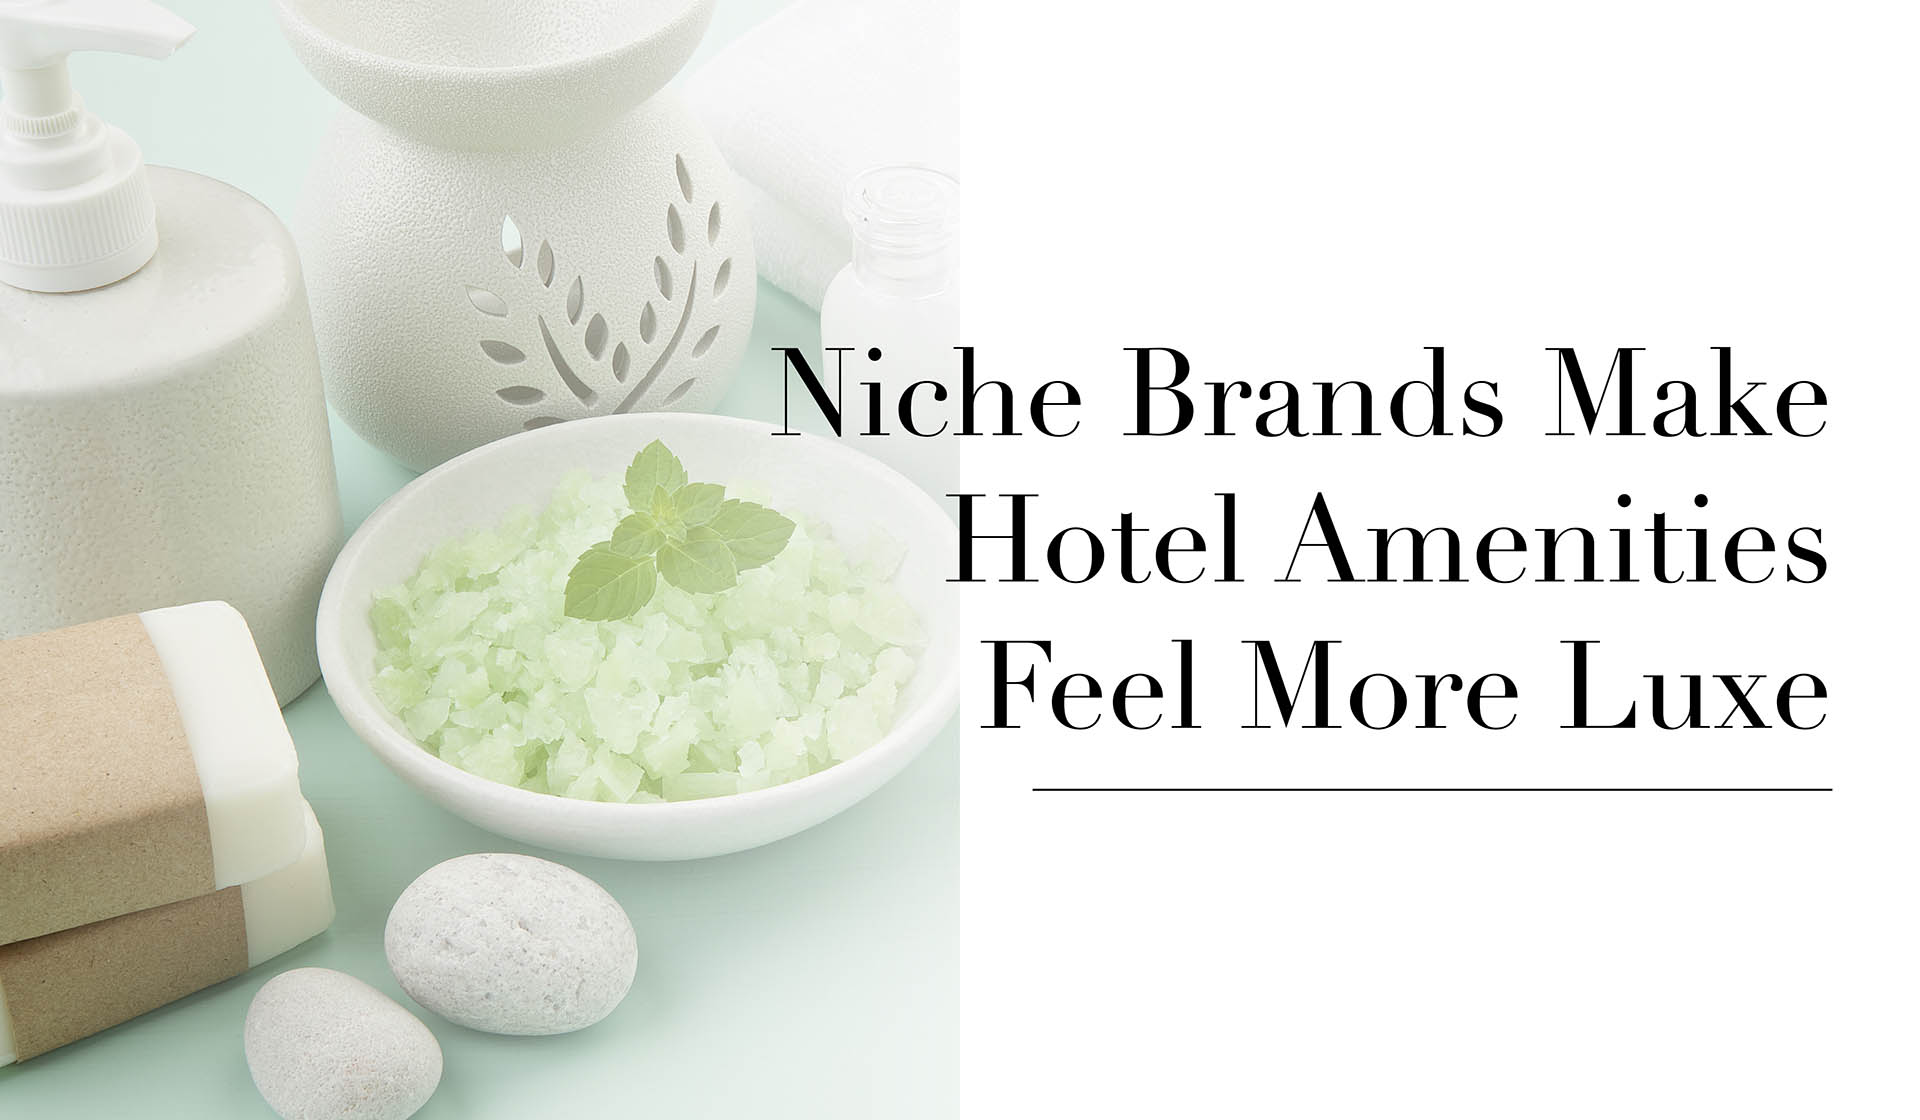 Niche Brands Make Hotel Amenities Feel More Luxe